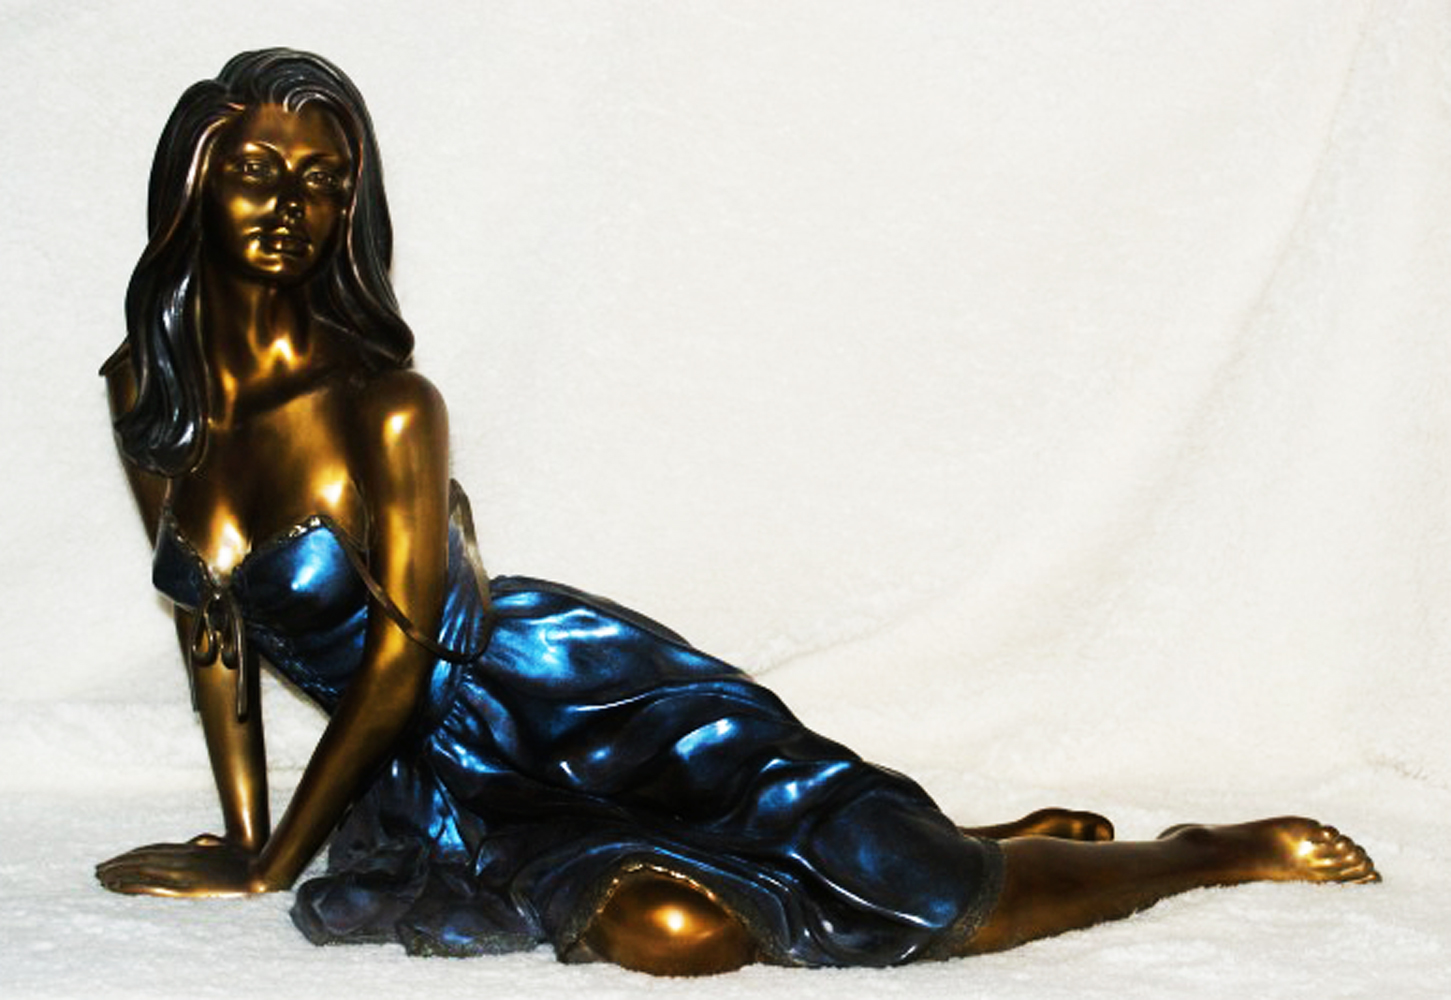 Tranquility Bronze Sculpture 1999